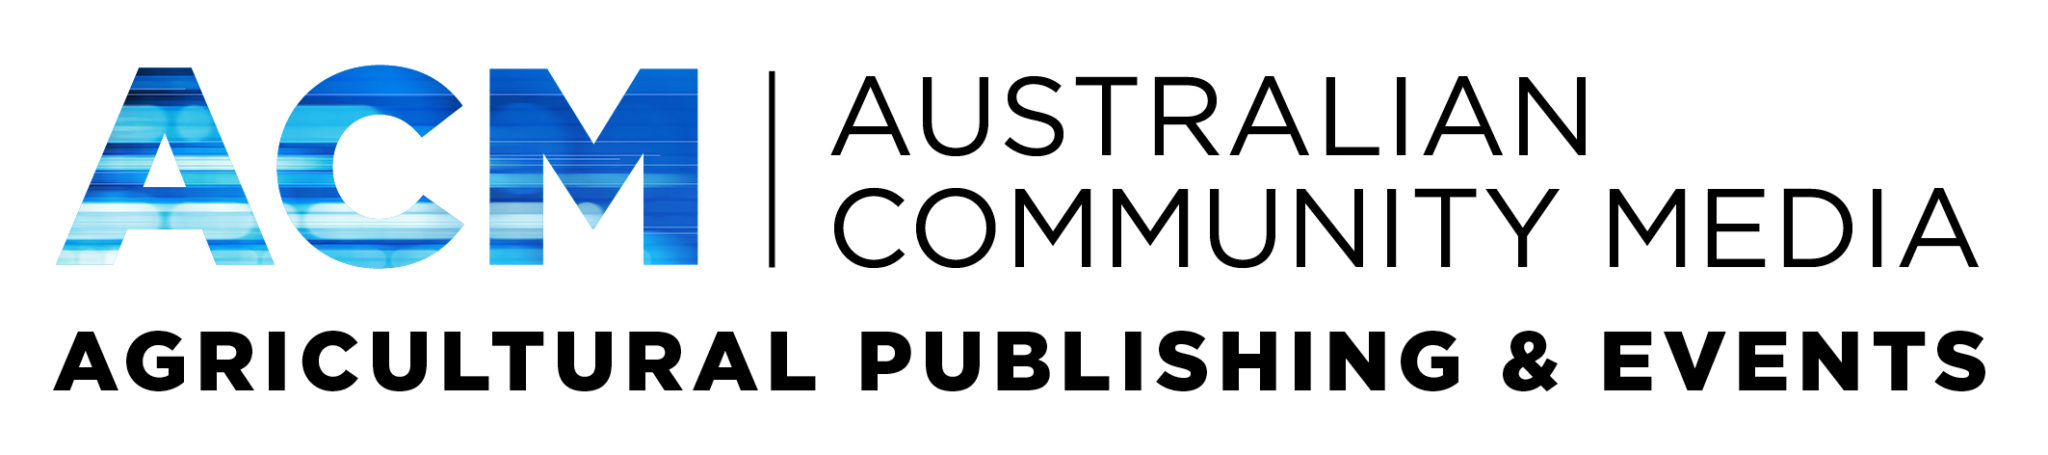 Australian Community Media Agricultural Publishing & Events